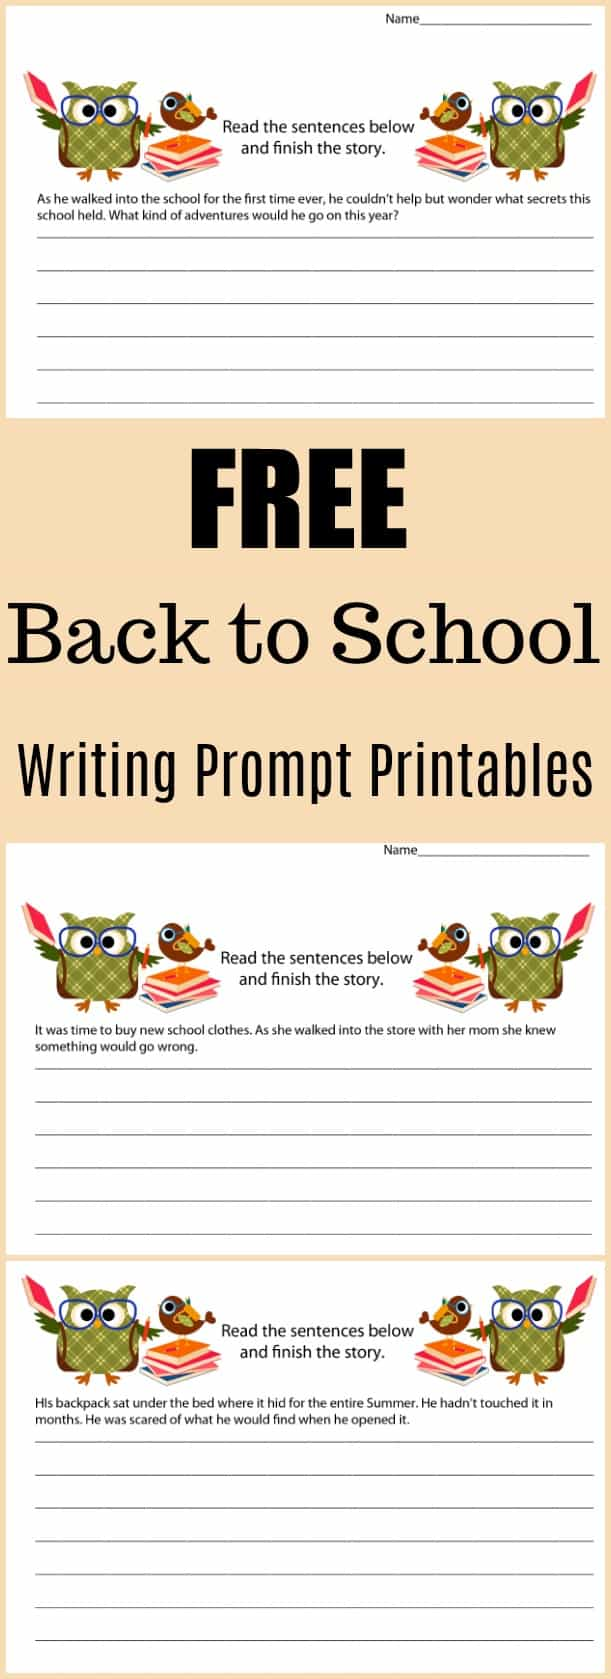 Free Back to School Writing Prompt Printable - #writing #writingprompt #holiday #printable #freeprintable #education #edchat #homeschool #homeschooling #backtoschool